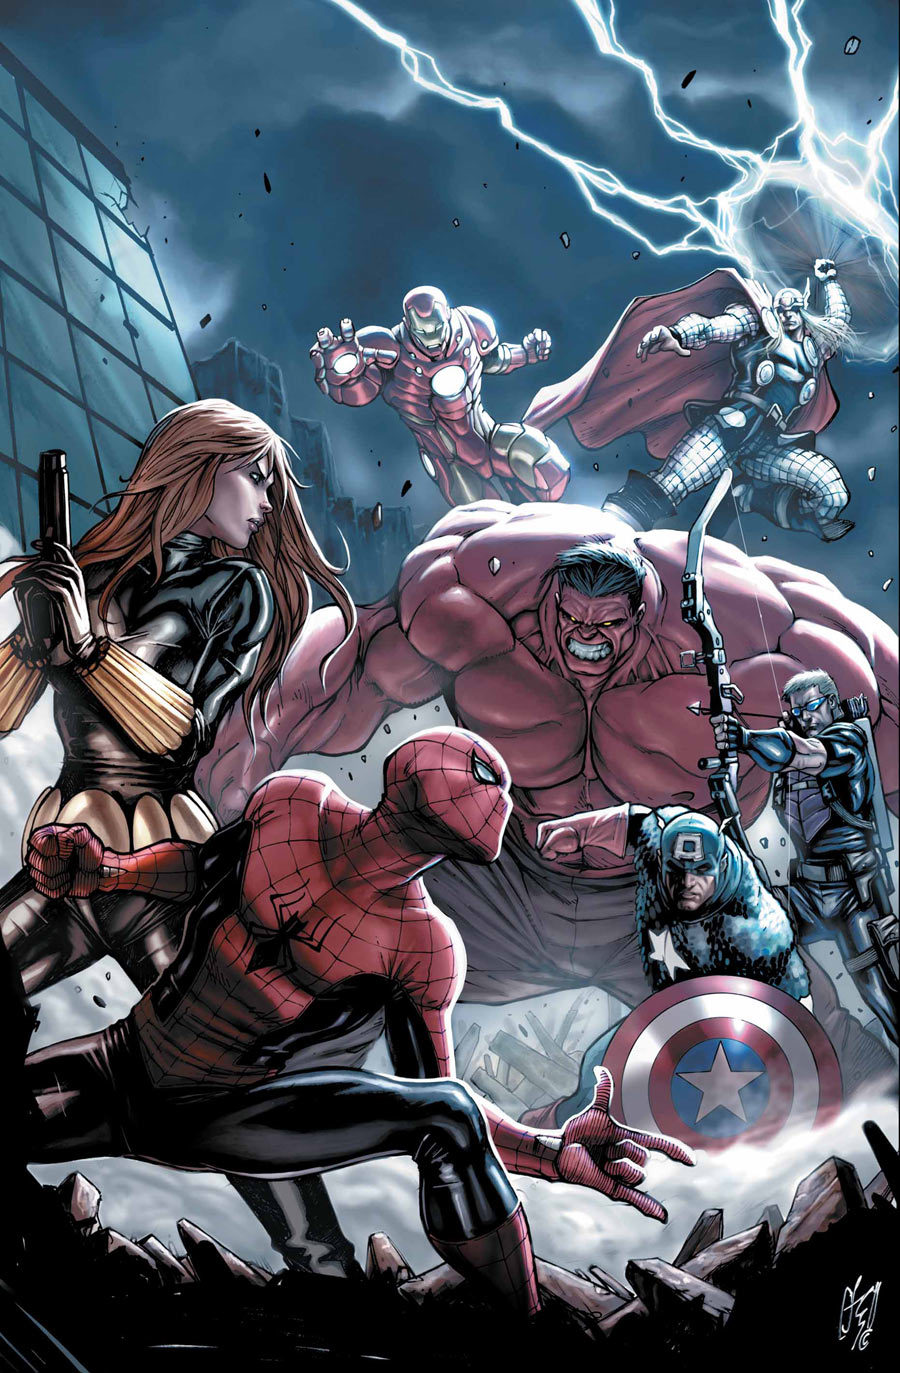 Artwork for cover of Amazing Spider-Man #687. June, 2012. Art by Stefano Caselli.